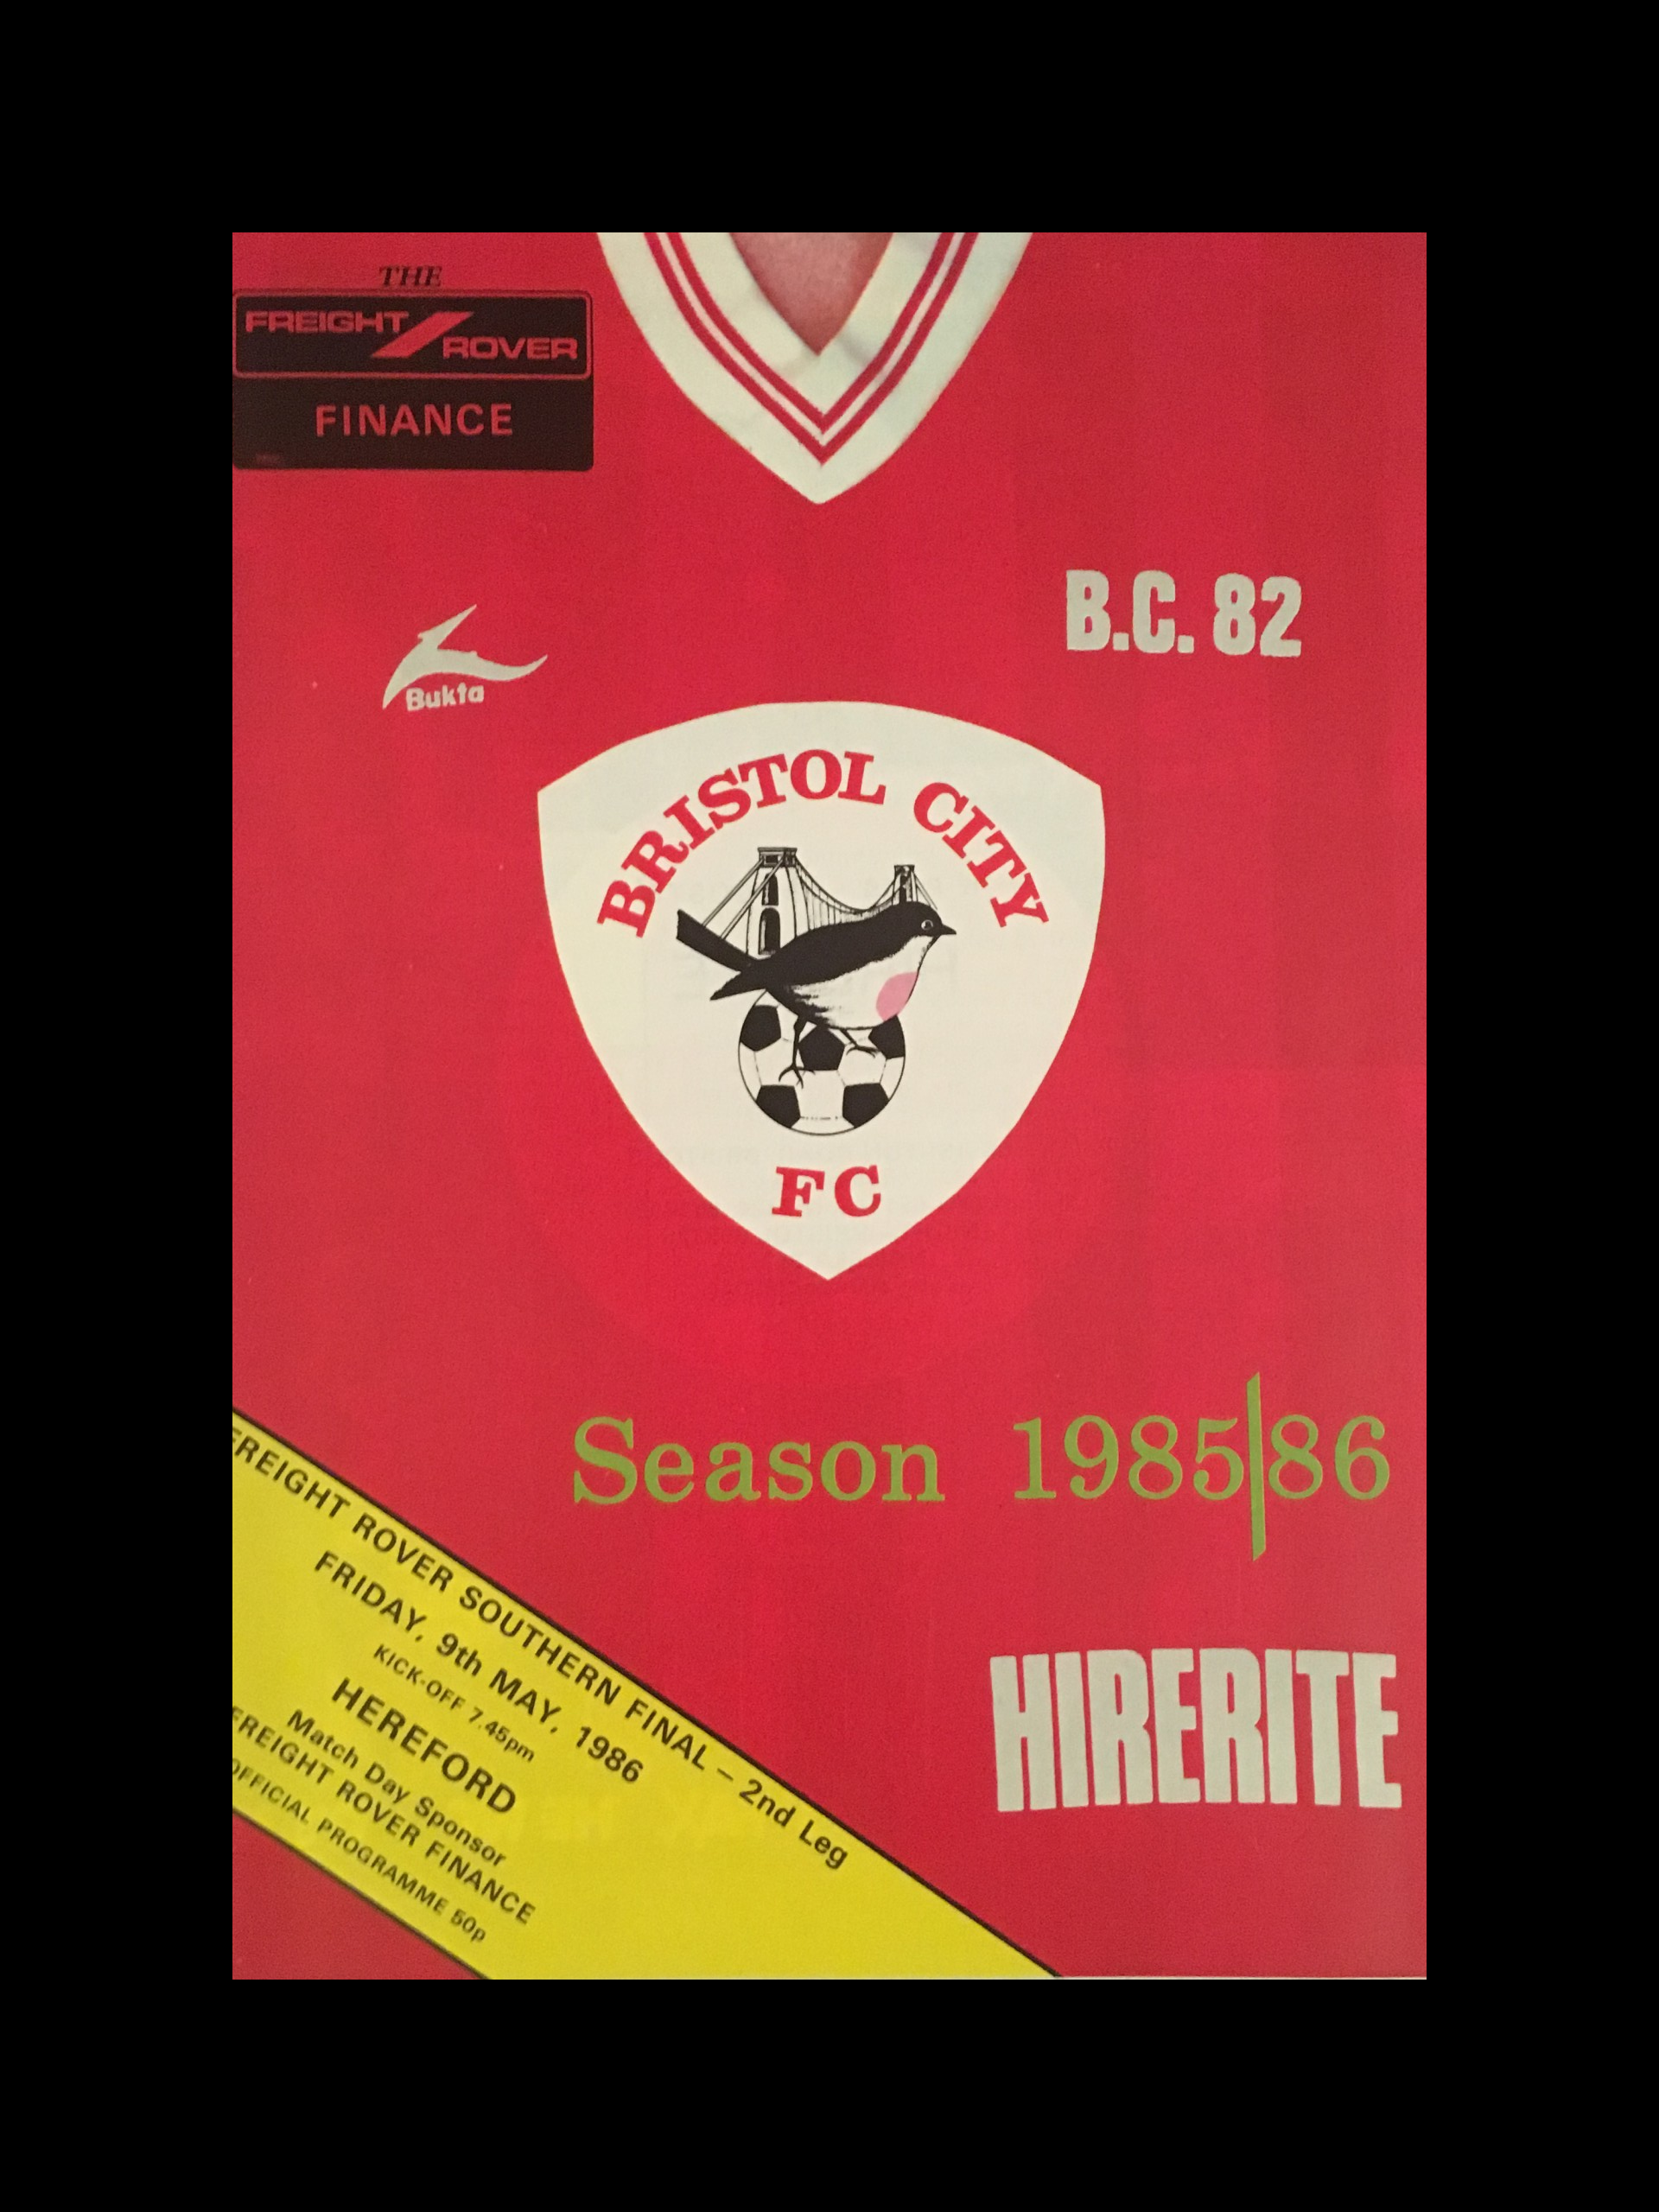 Bristol City v Hereford United 09-05-86 Programme